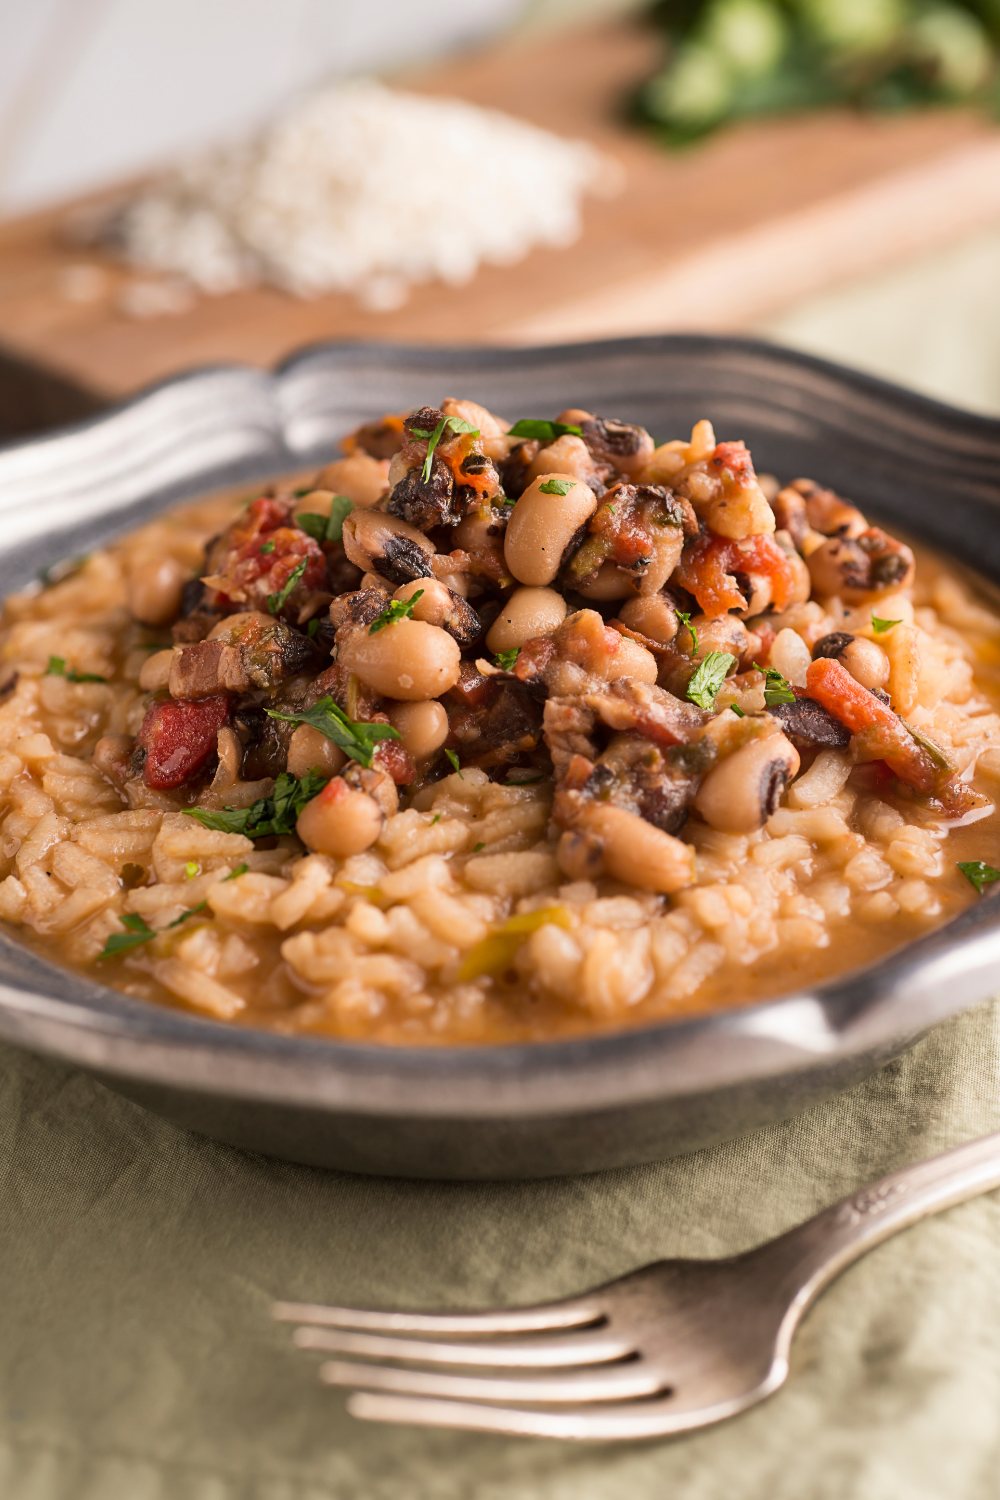 Spicy Black-Eyed Peas and Rice For New Year's